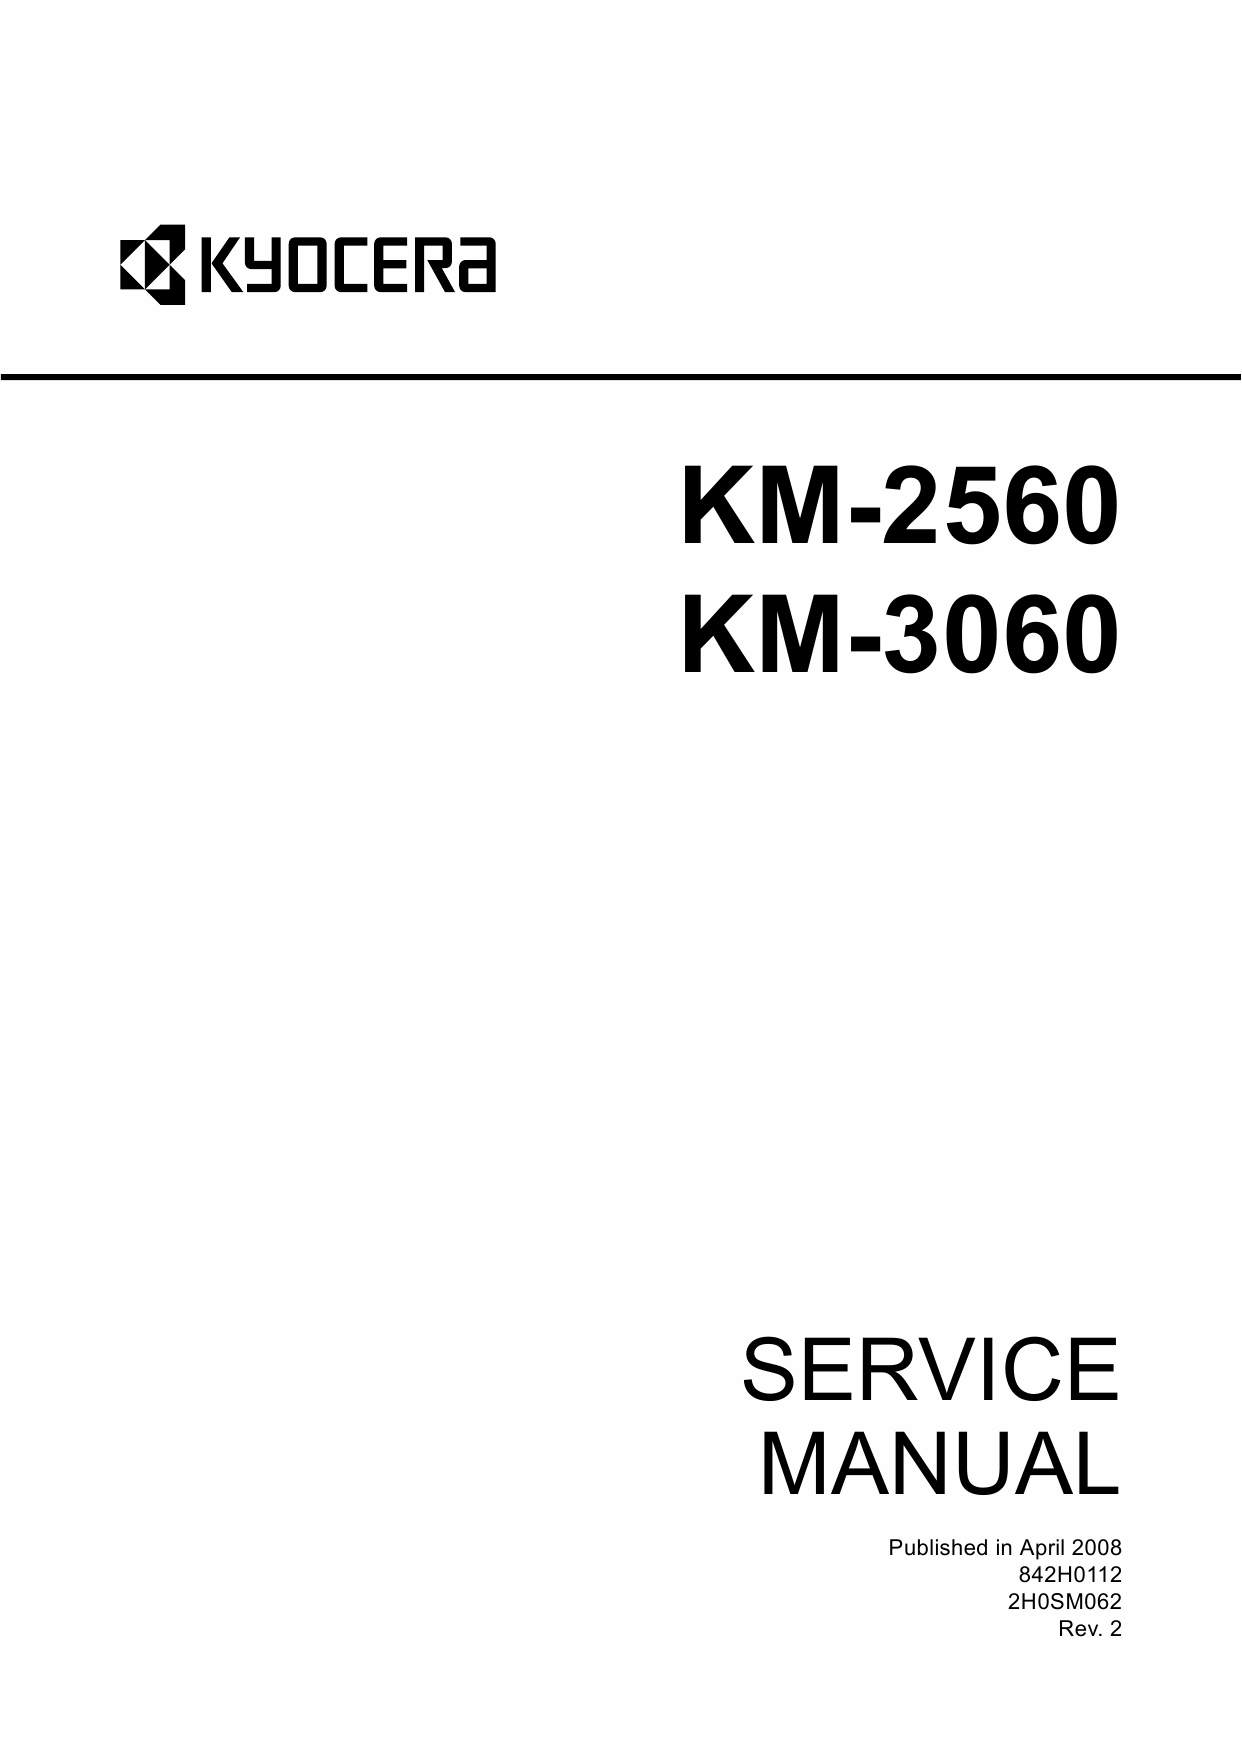 KYOCERA Copier KM-2560 3060 Service Manual-1